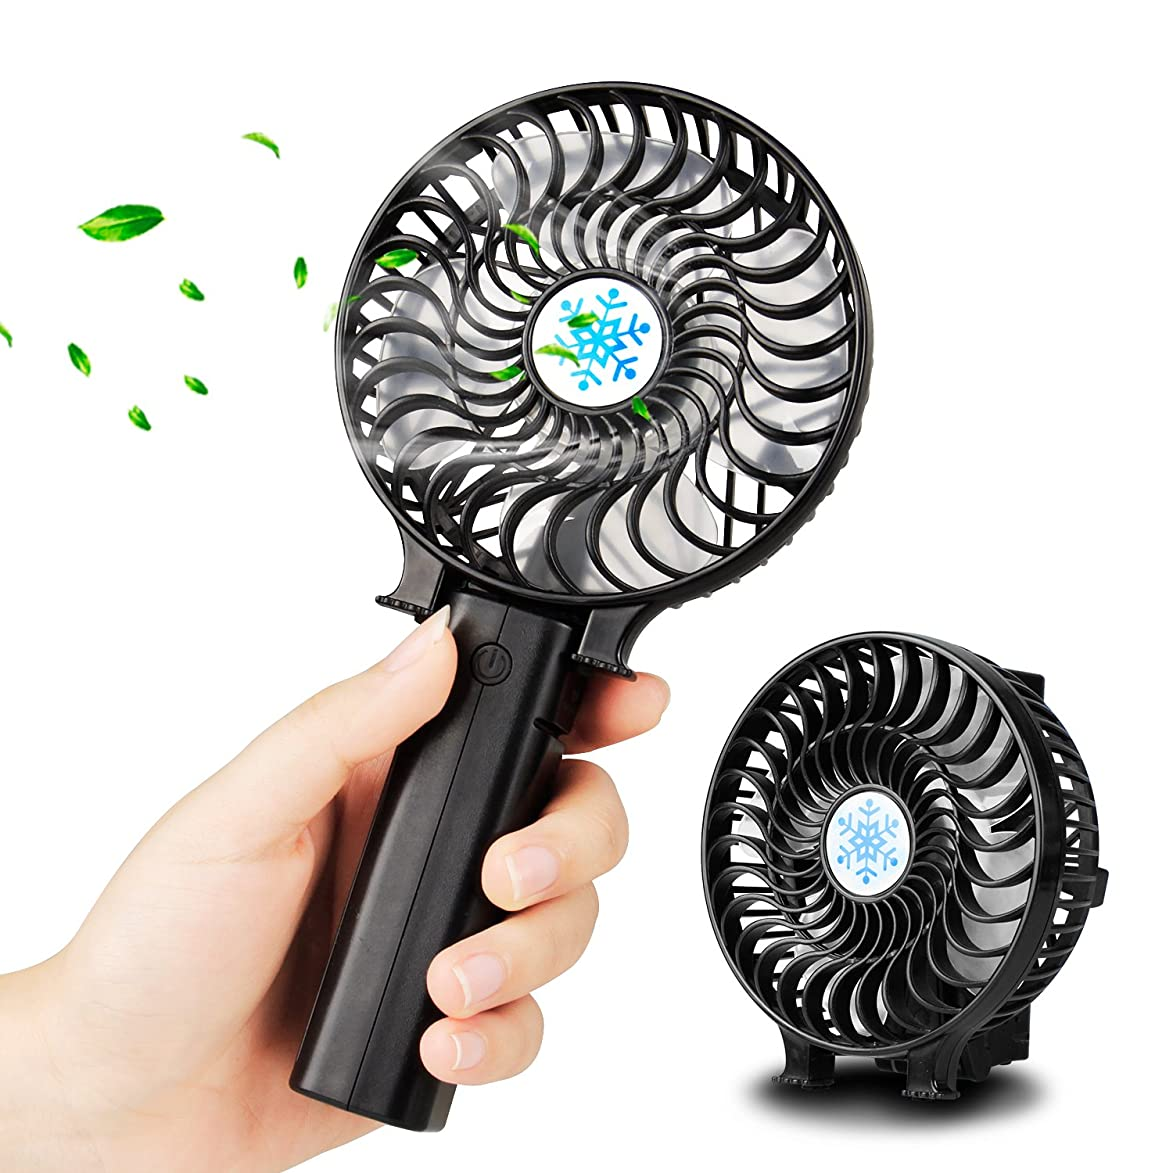 Mini Handheld Fan Battery Operated, UBEGOOD Personal Portable Travel Fan with USB Rechargeable Battery, 3 Speeds, Folding Electric Face Fan for Trip, Camping, Disney, Office Home